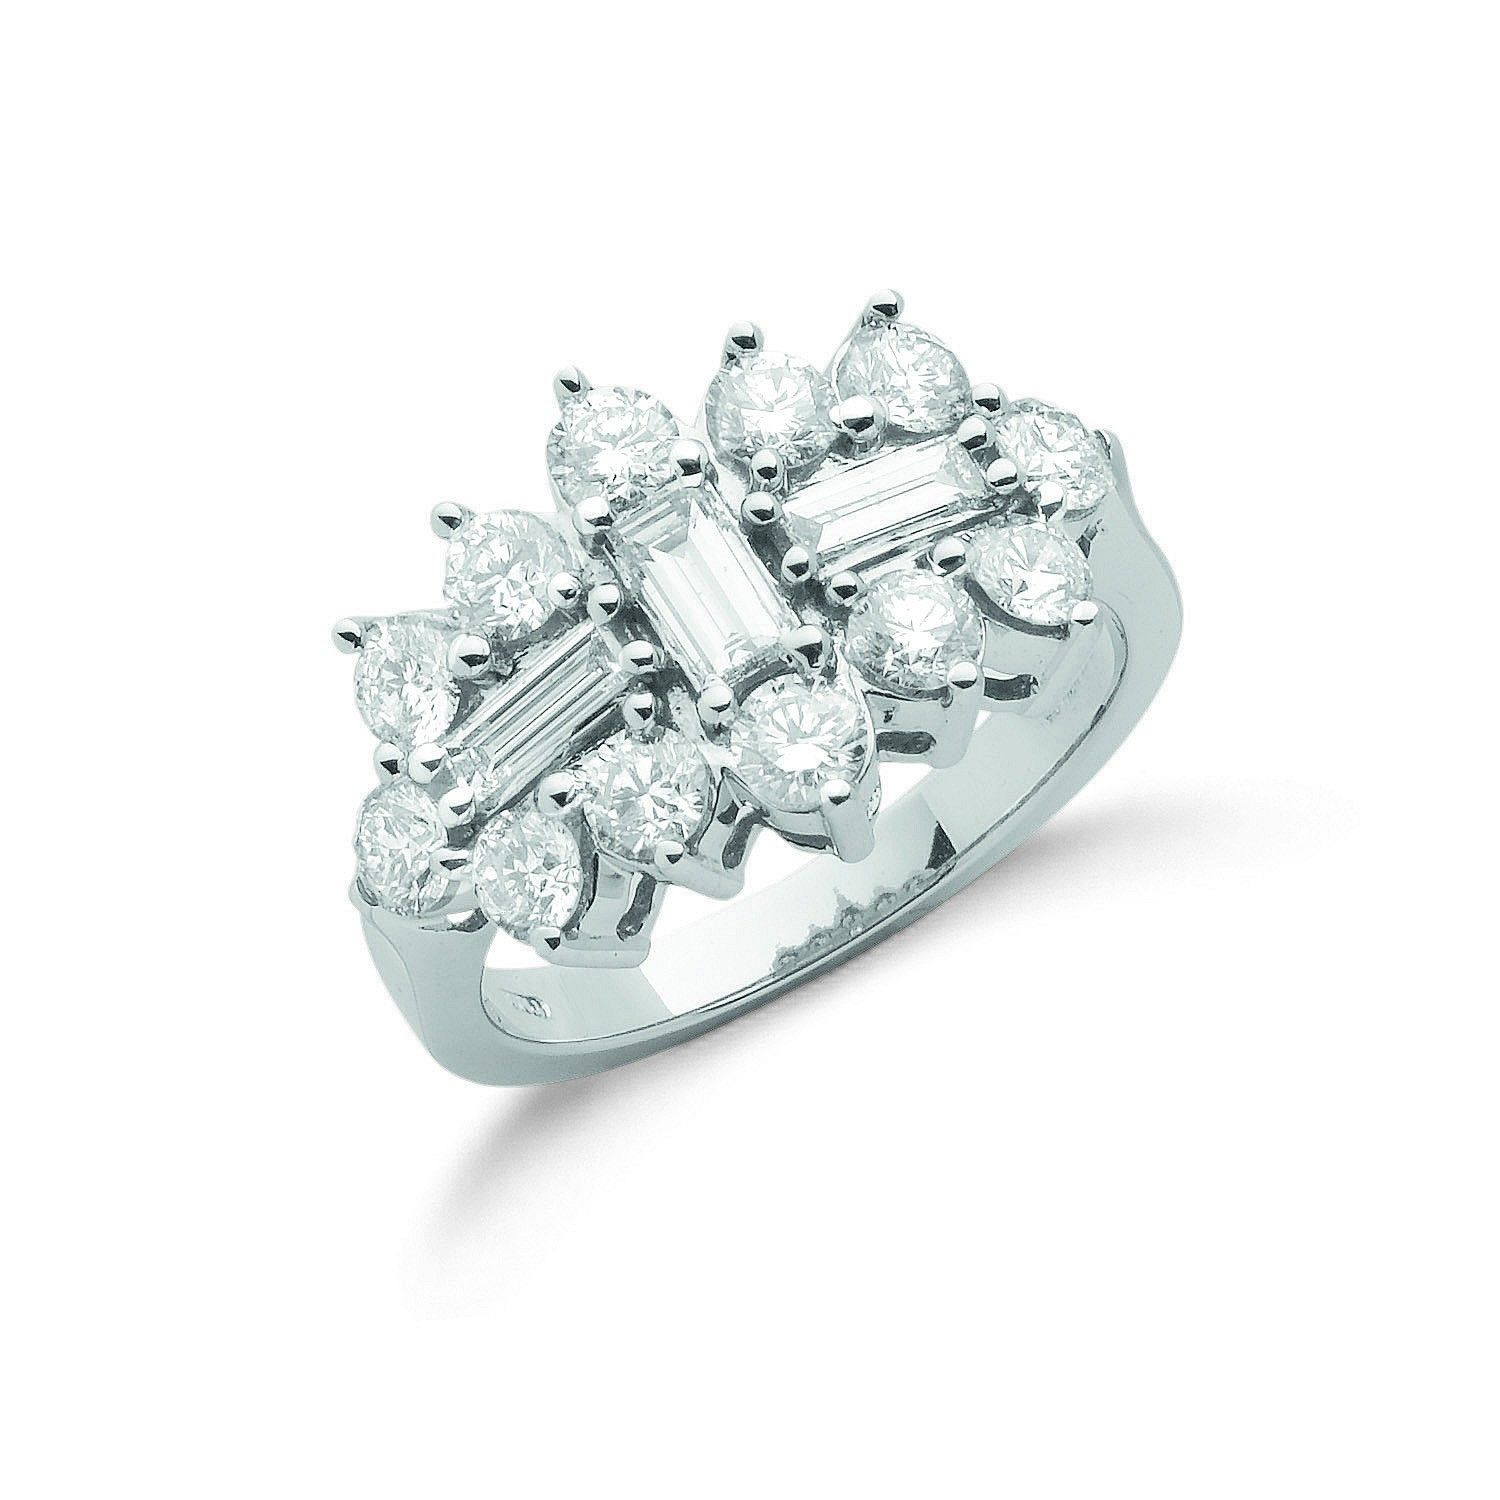 18ct White Gold 2.00cts Diamond Boat/Cluster Ring Diamond Gold